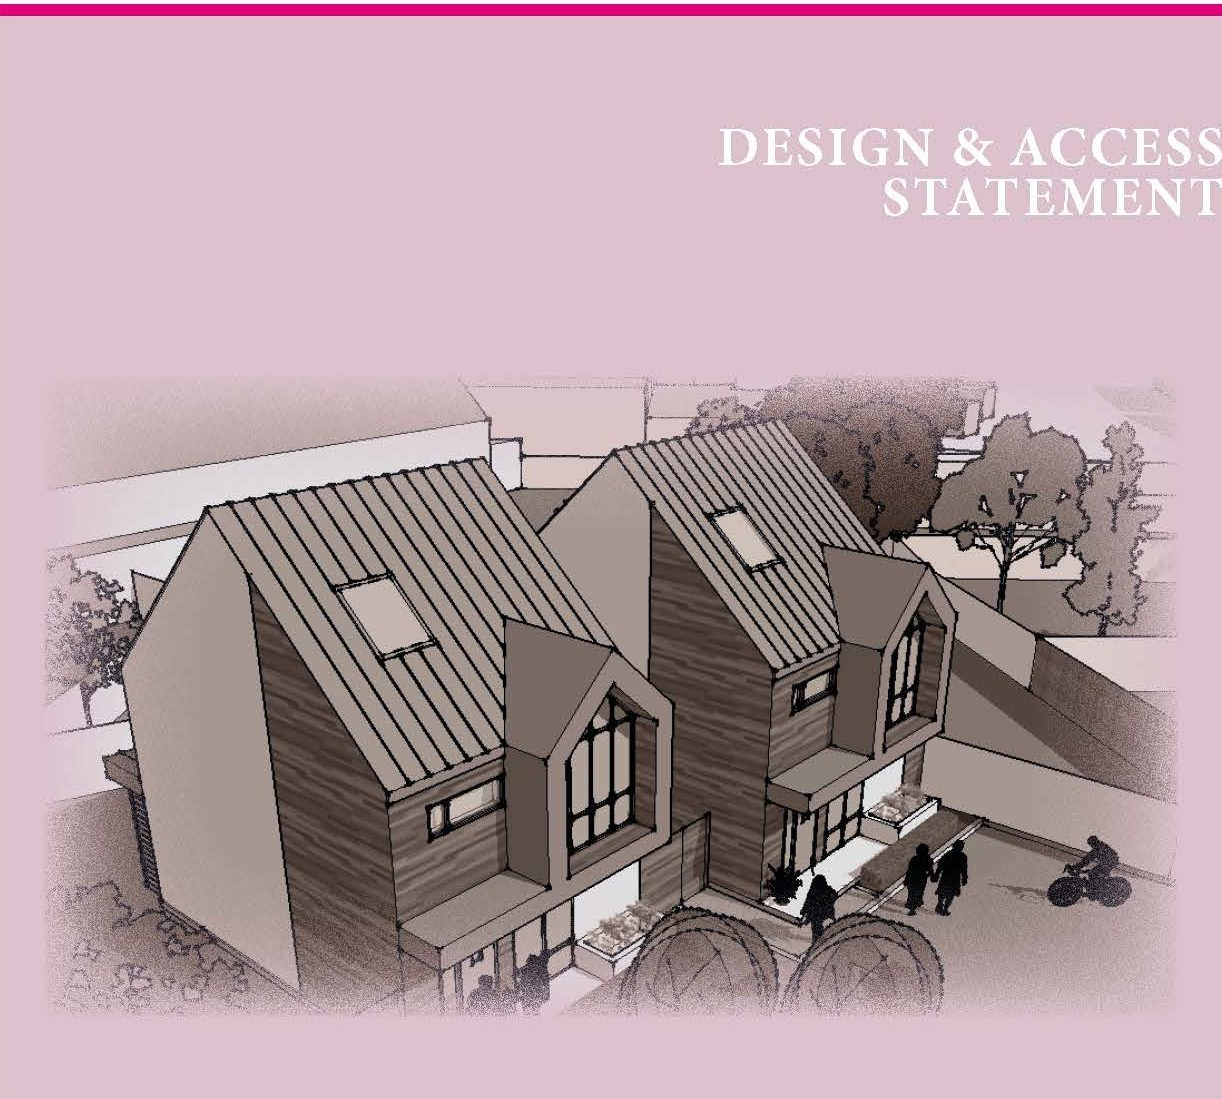 design & access statement